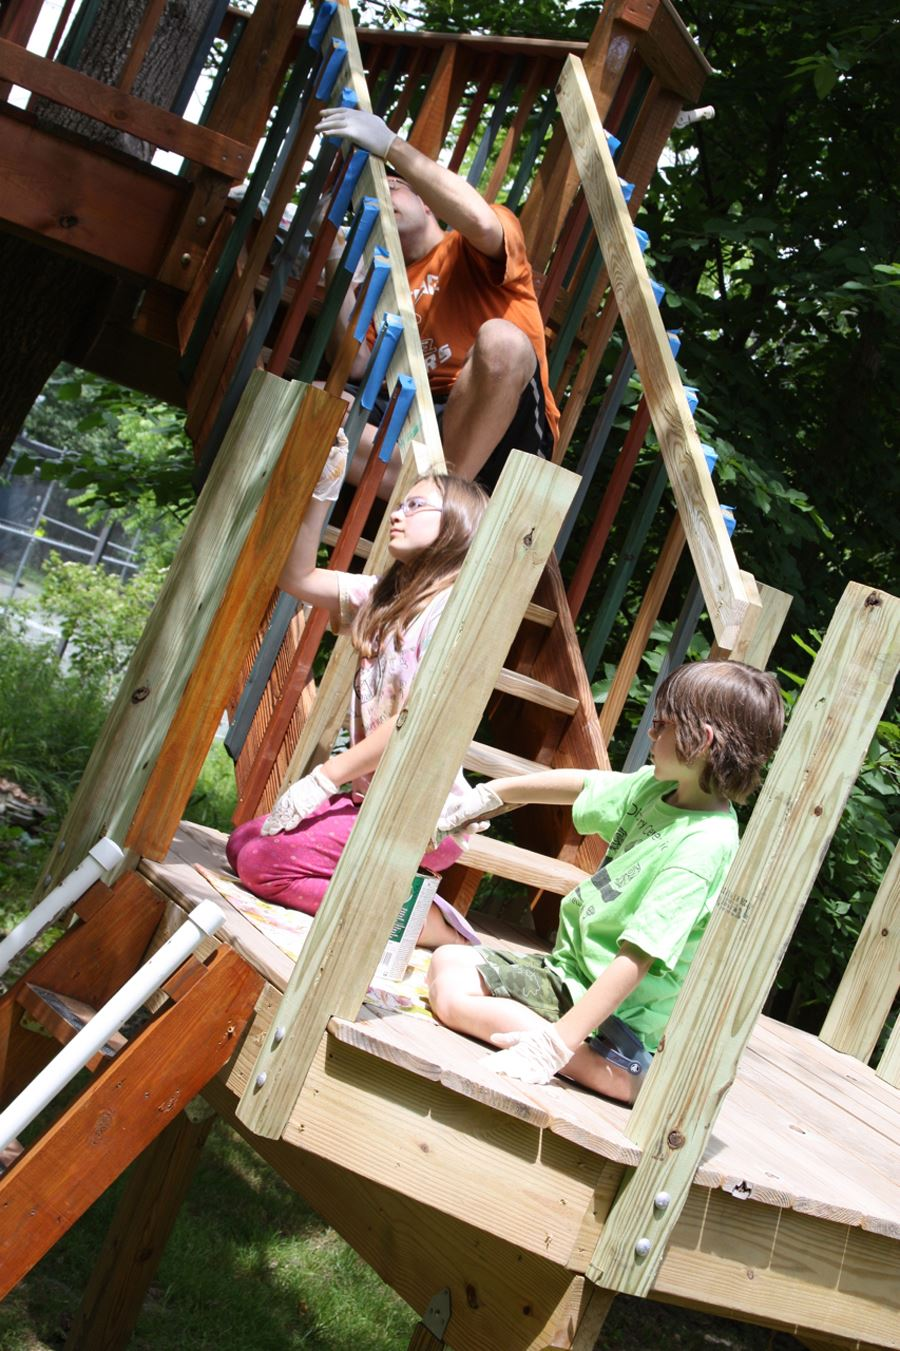 Be sure to contact their opinion and help when building a tree house